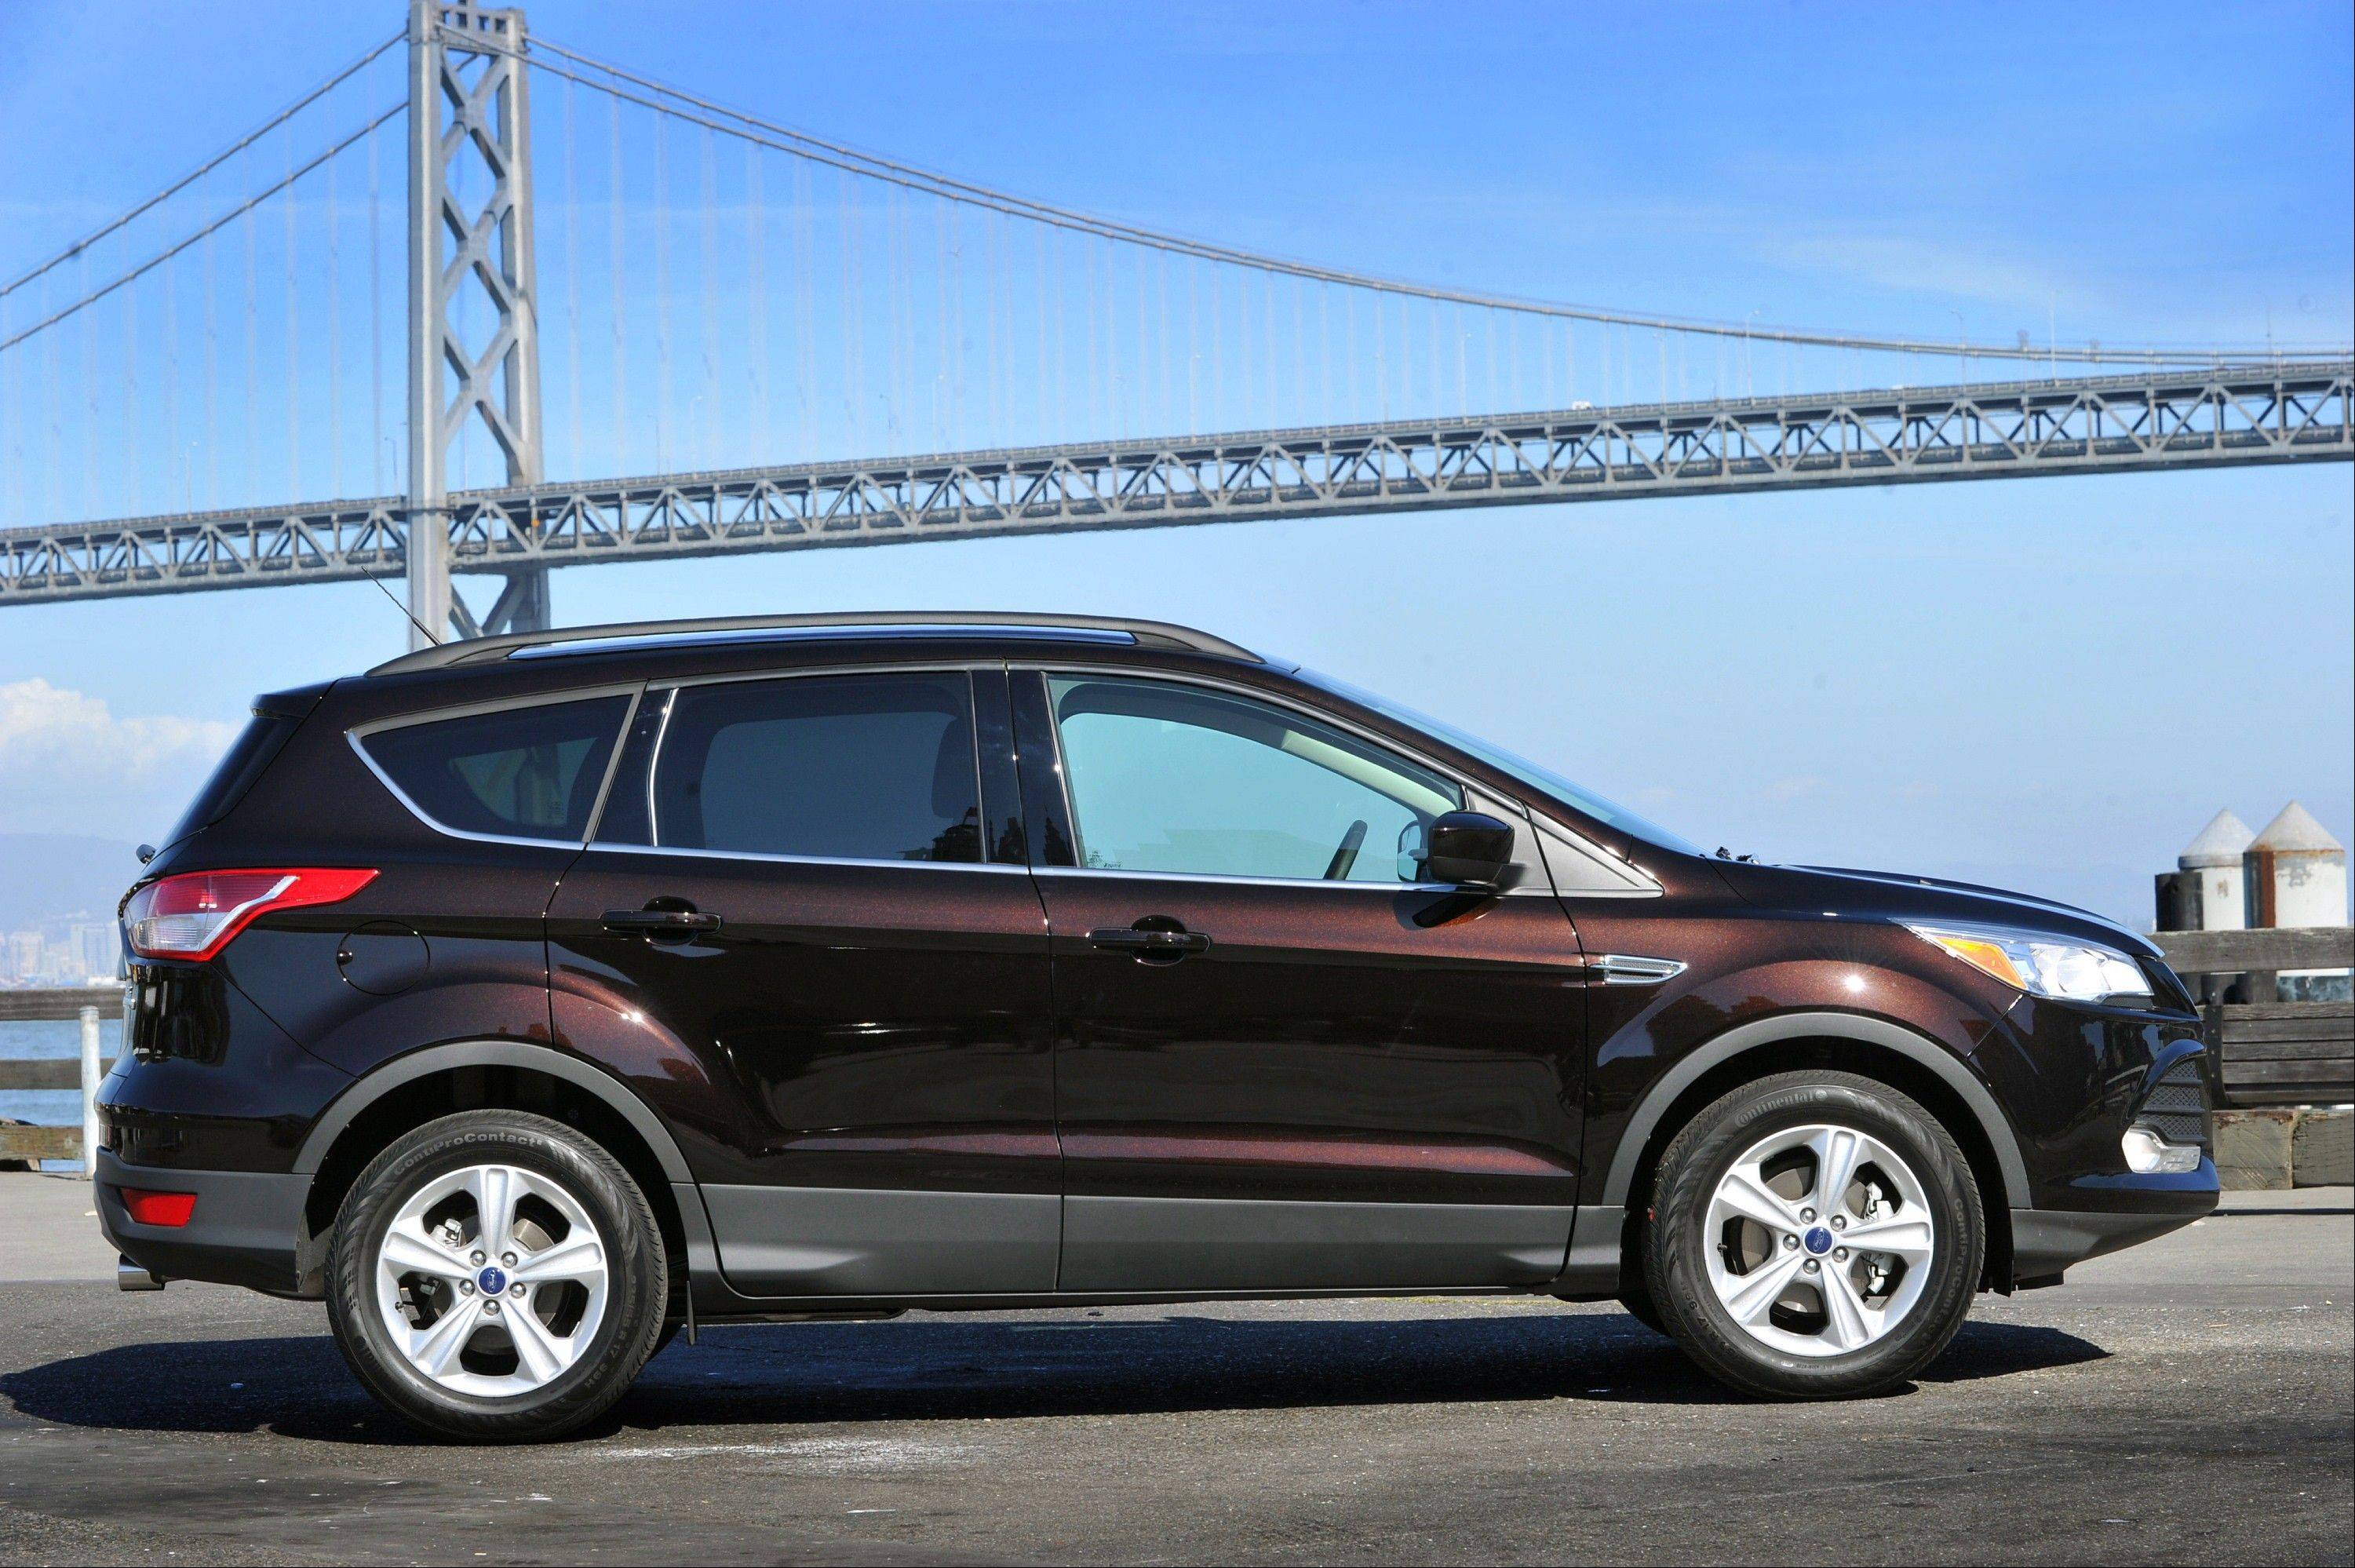 The all-new 2013 Ford Escape is seen above. Ford said 2012 will be the second year in a row it will sell more than 2 million cars.